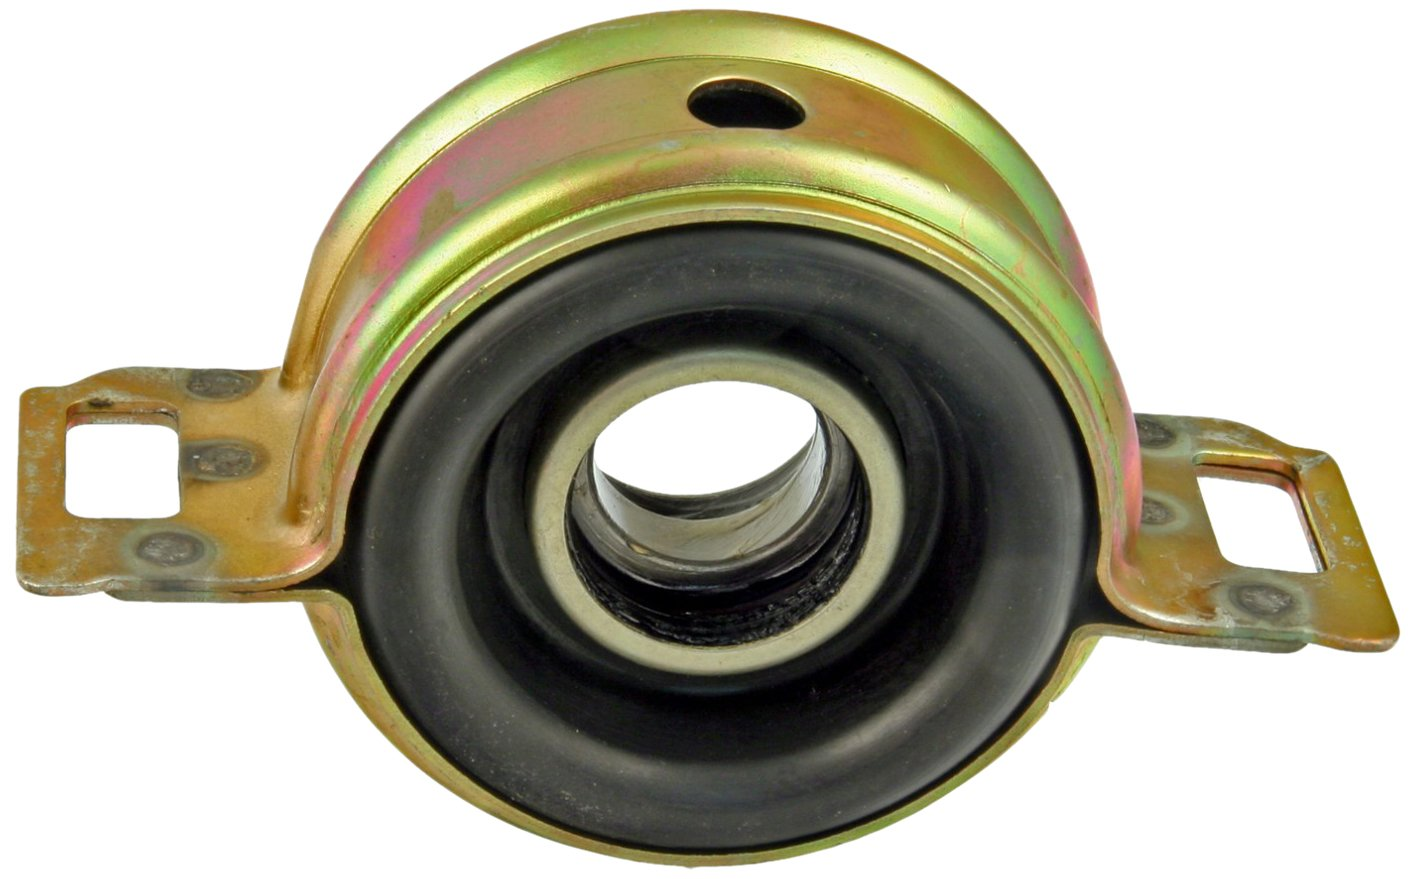 Precision HB31 Drive Shaft Center Support (Hanger) Bearing